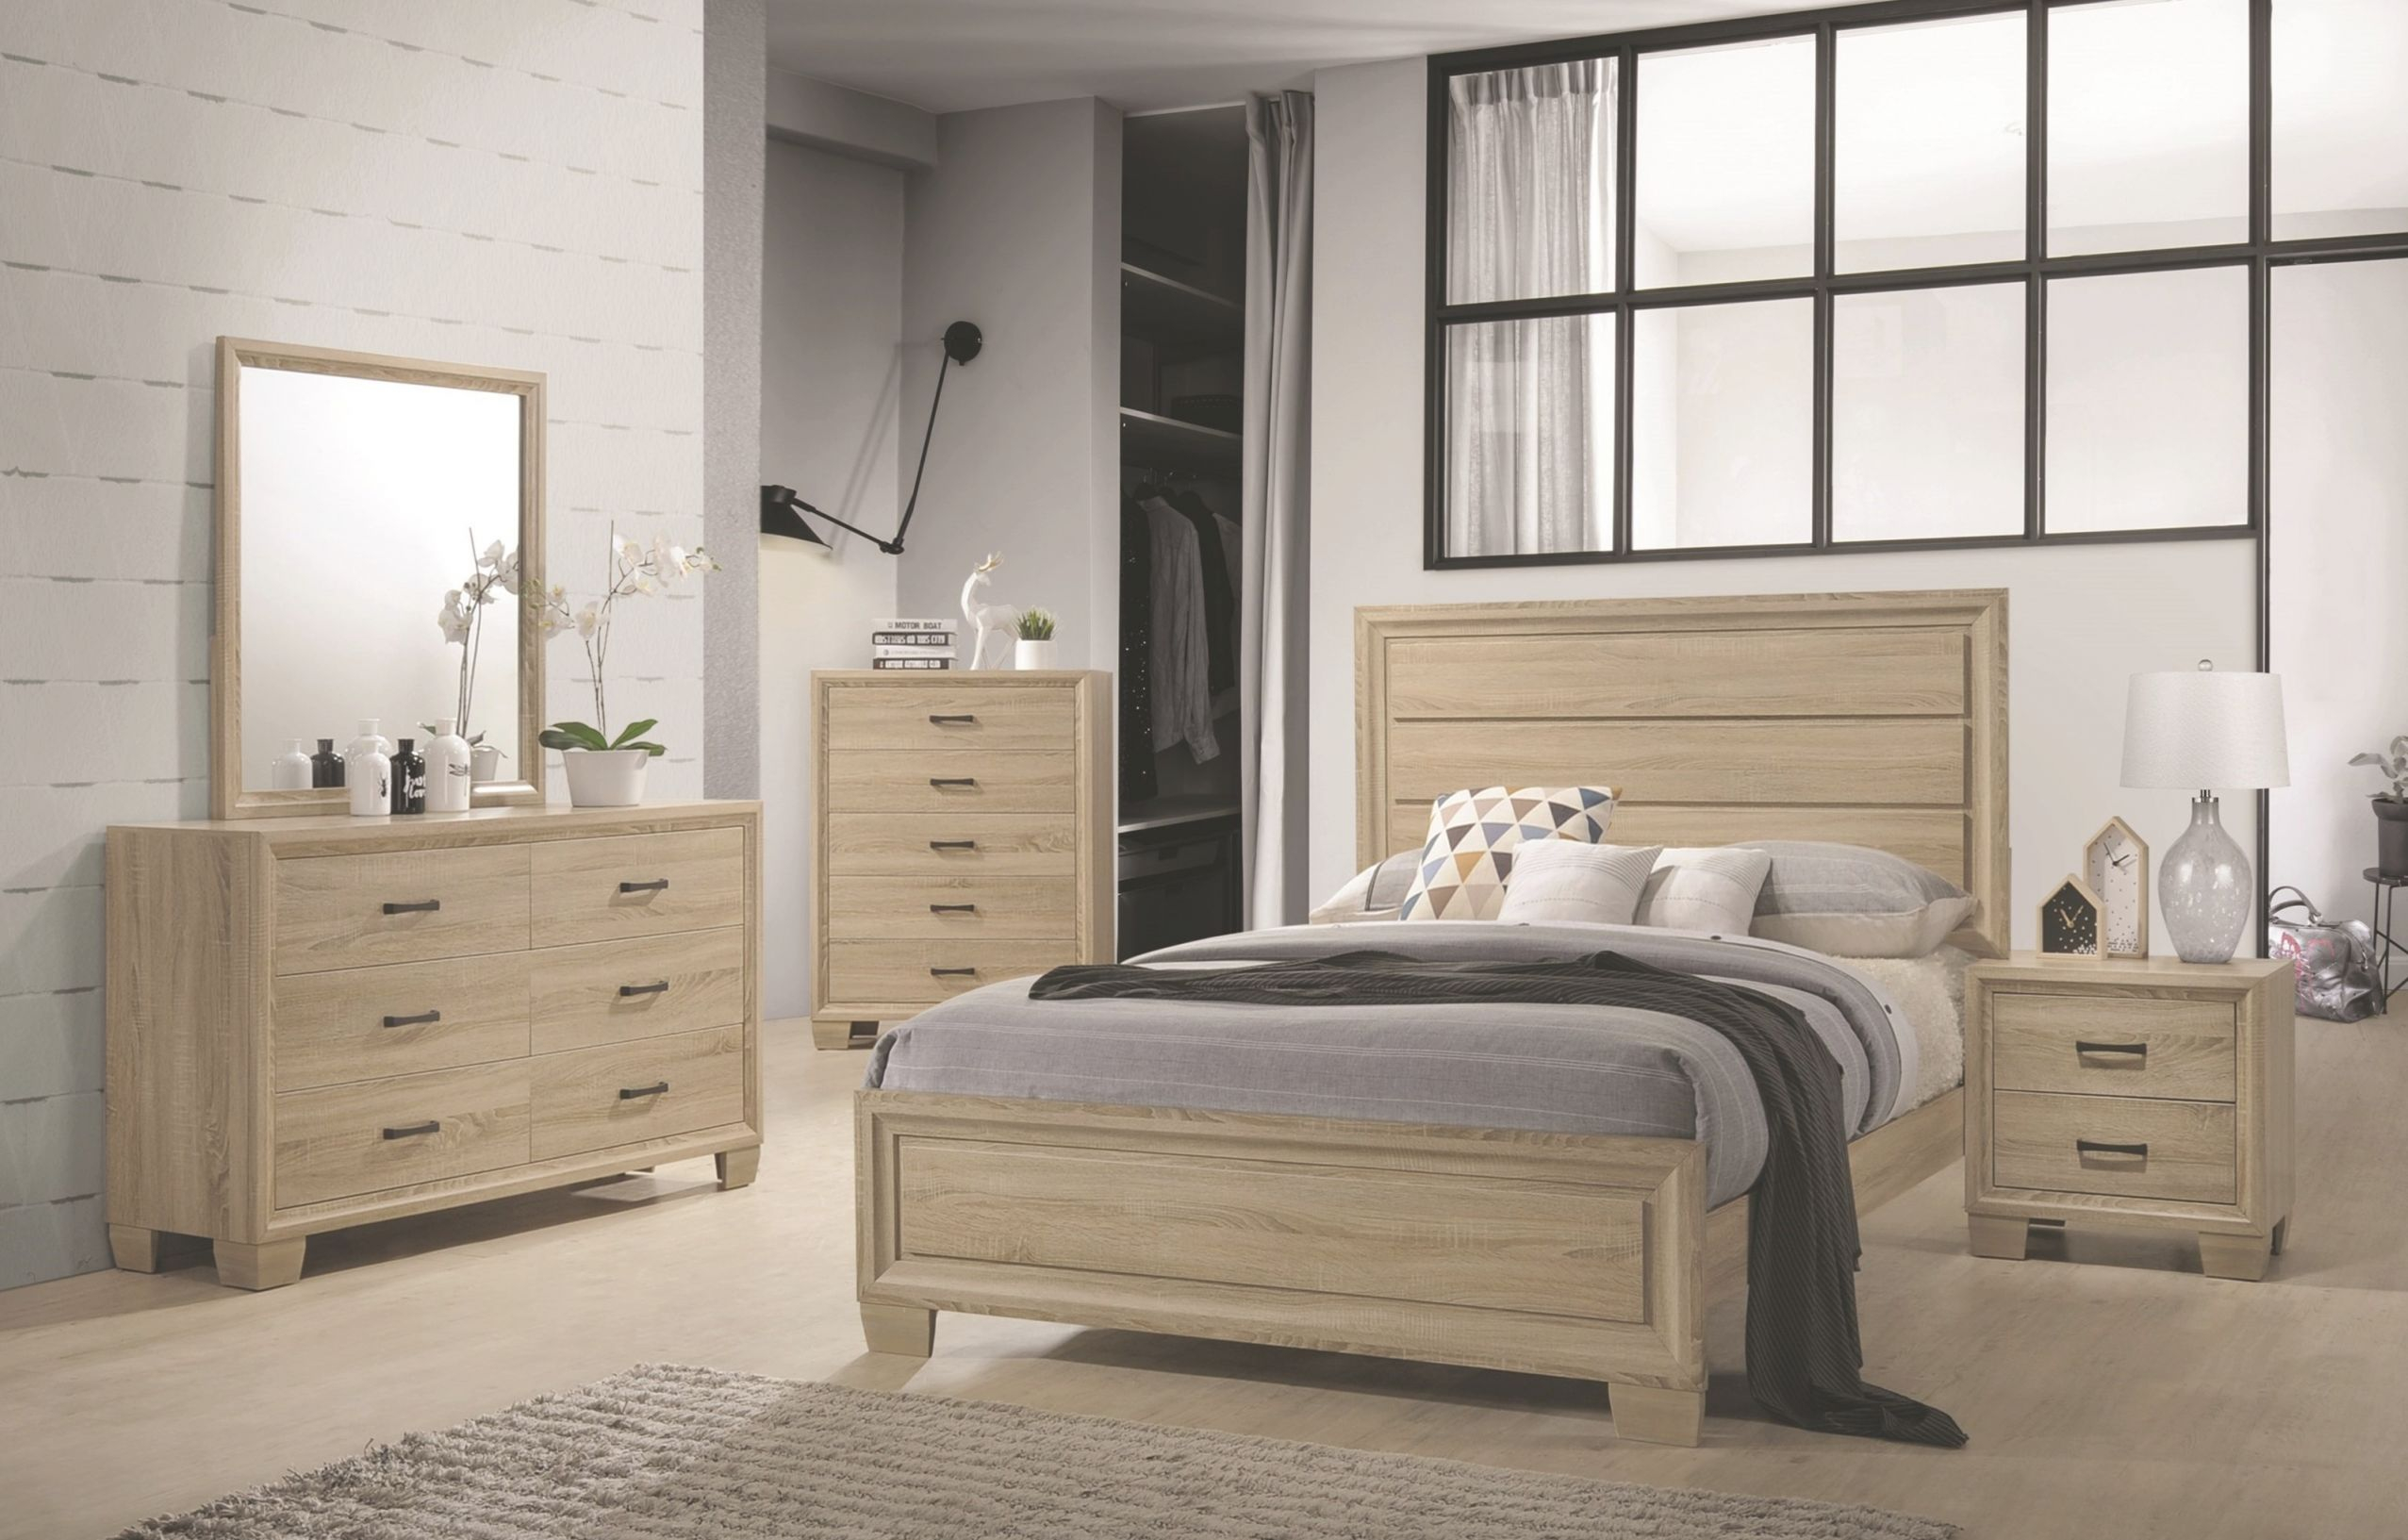 Transitional Modern Unique Panel Queen Size Bed 4Pc Set Dresser Mirror  Nightstand Wooden Bedroom Furniture inside Beautiful Queen Size Bedroom Furniture Sets